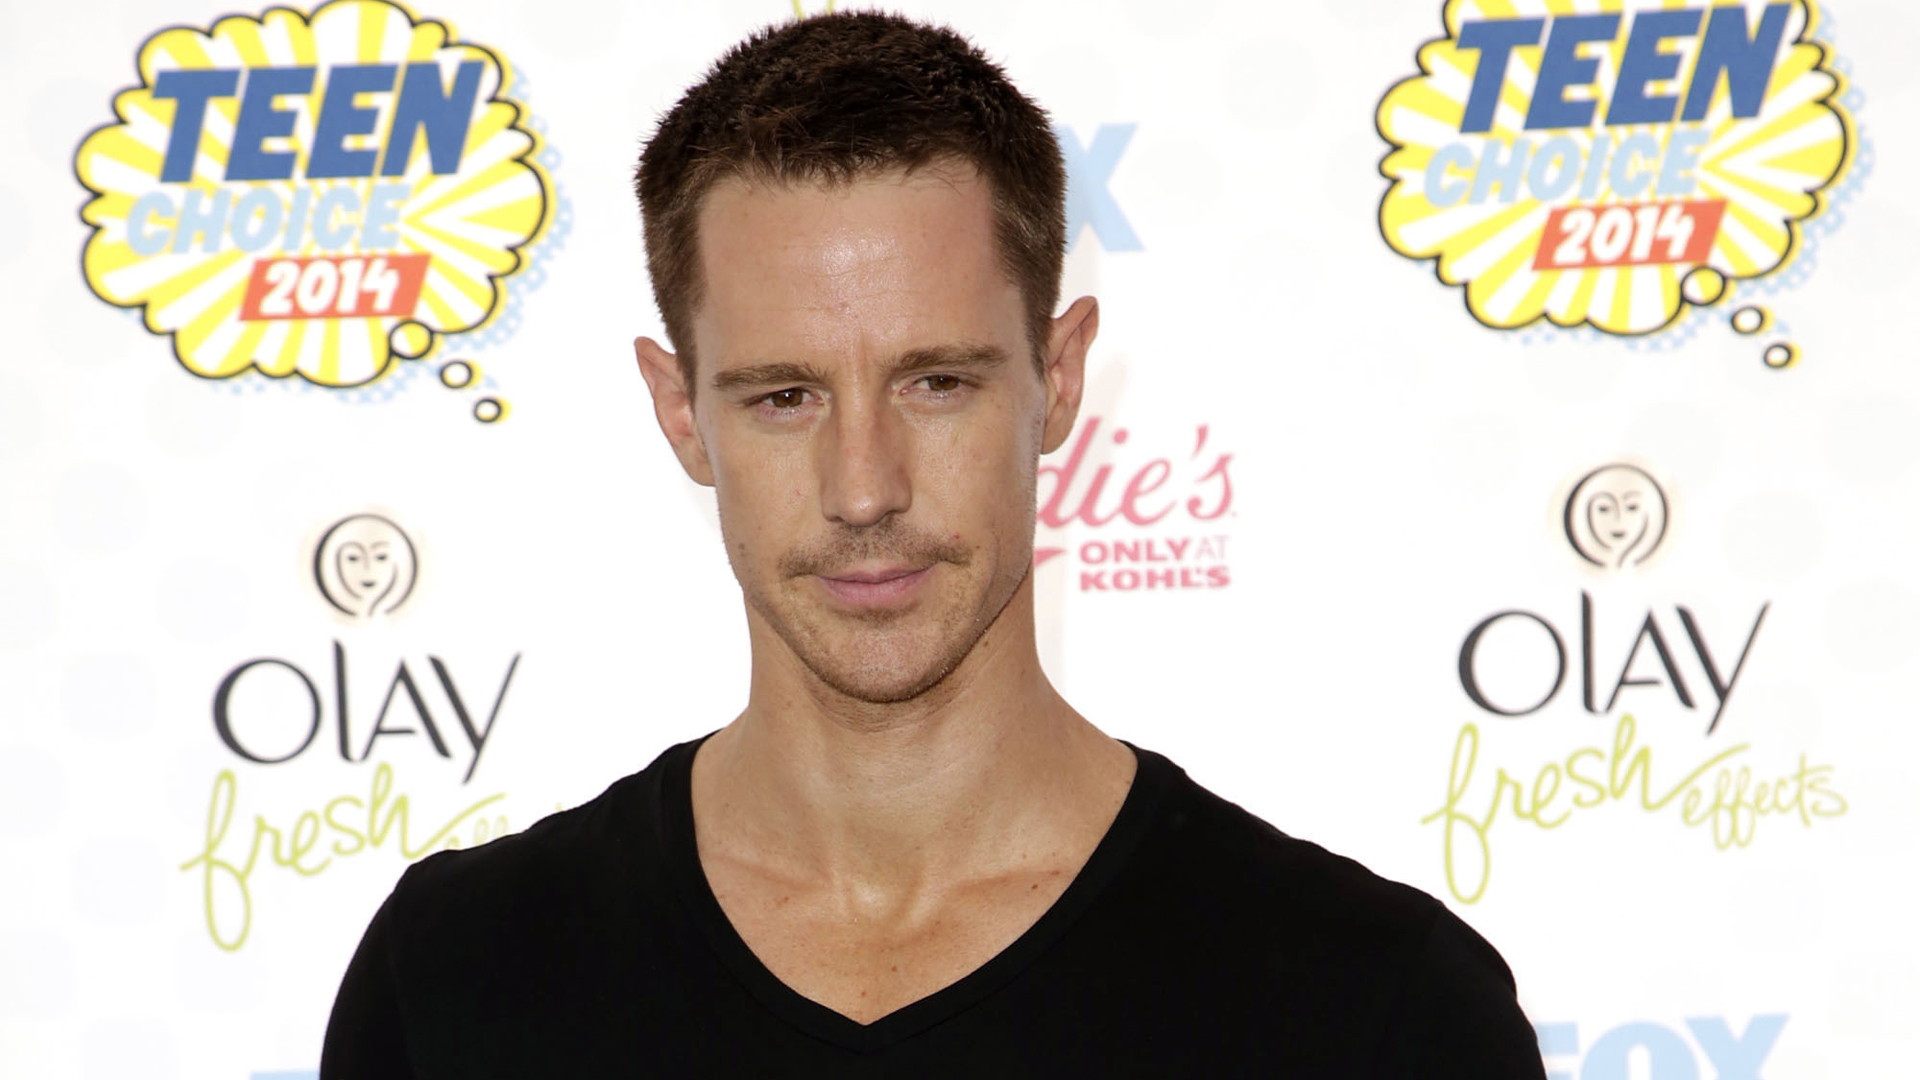 Jason Dohring at the 2014 Teen Choice Awards